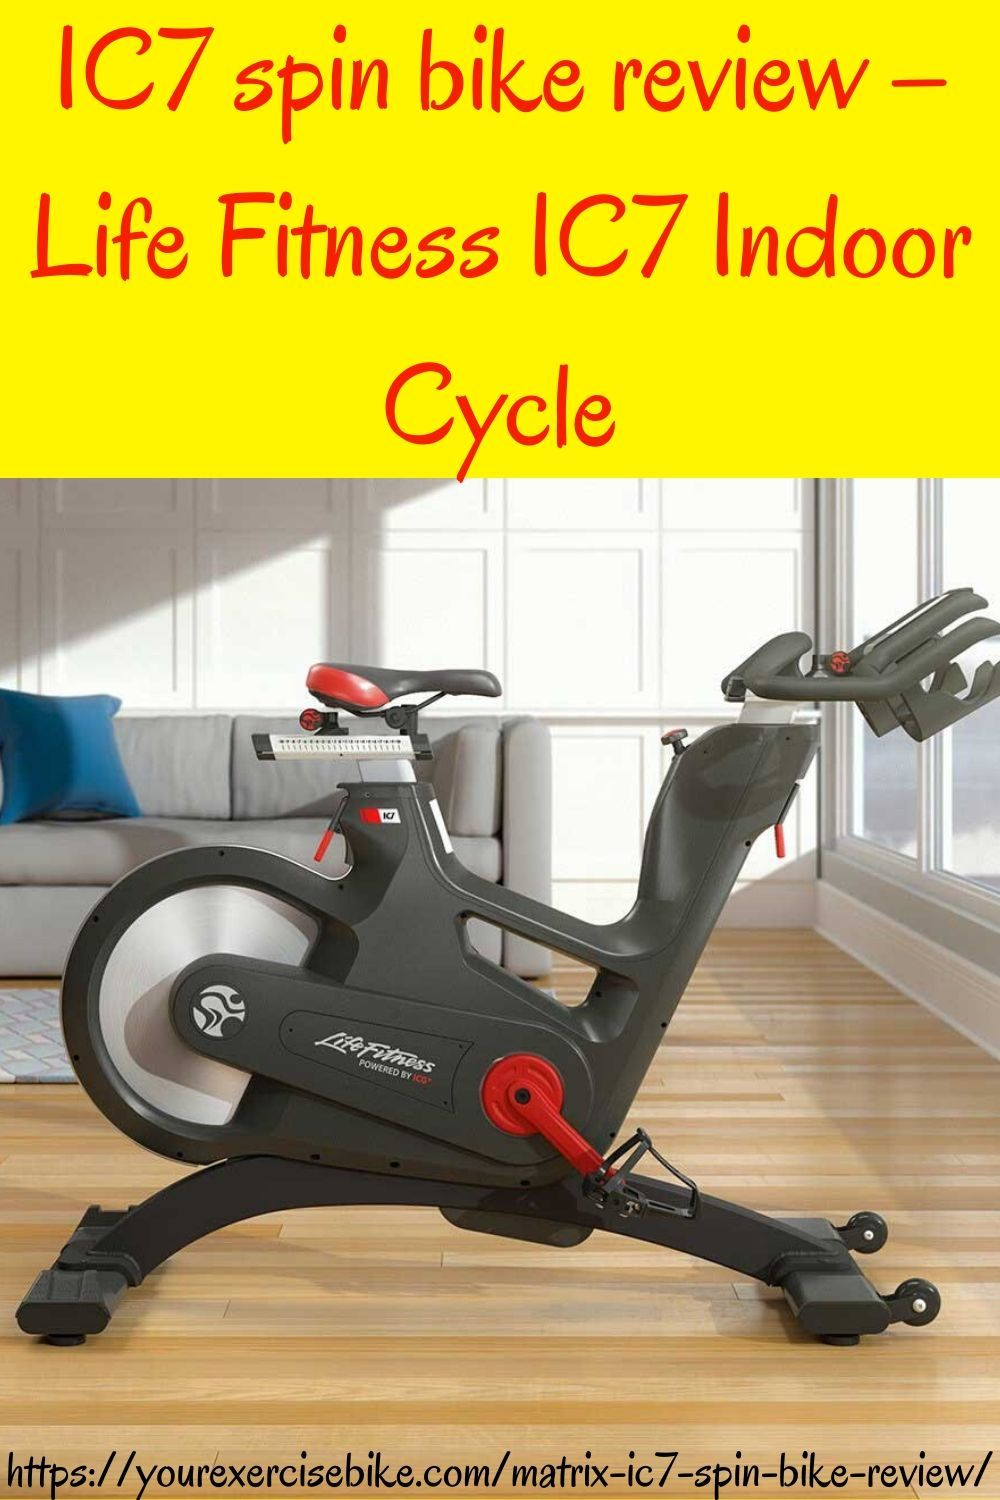 Ic7 Spin Bike Review Life Fitness Ic7 Indoor Cycle Spin Bikes Spin Bike Reviews Bike Reviews